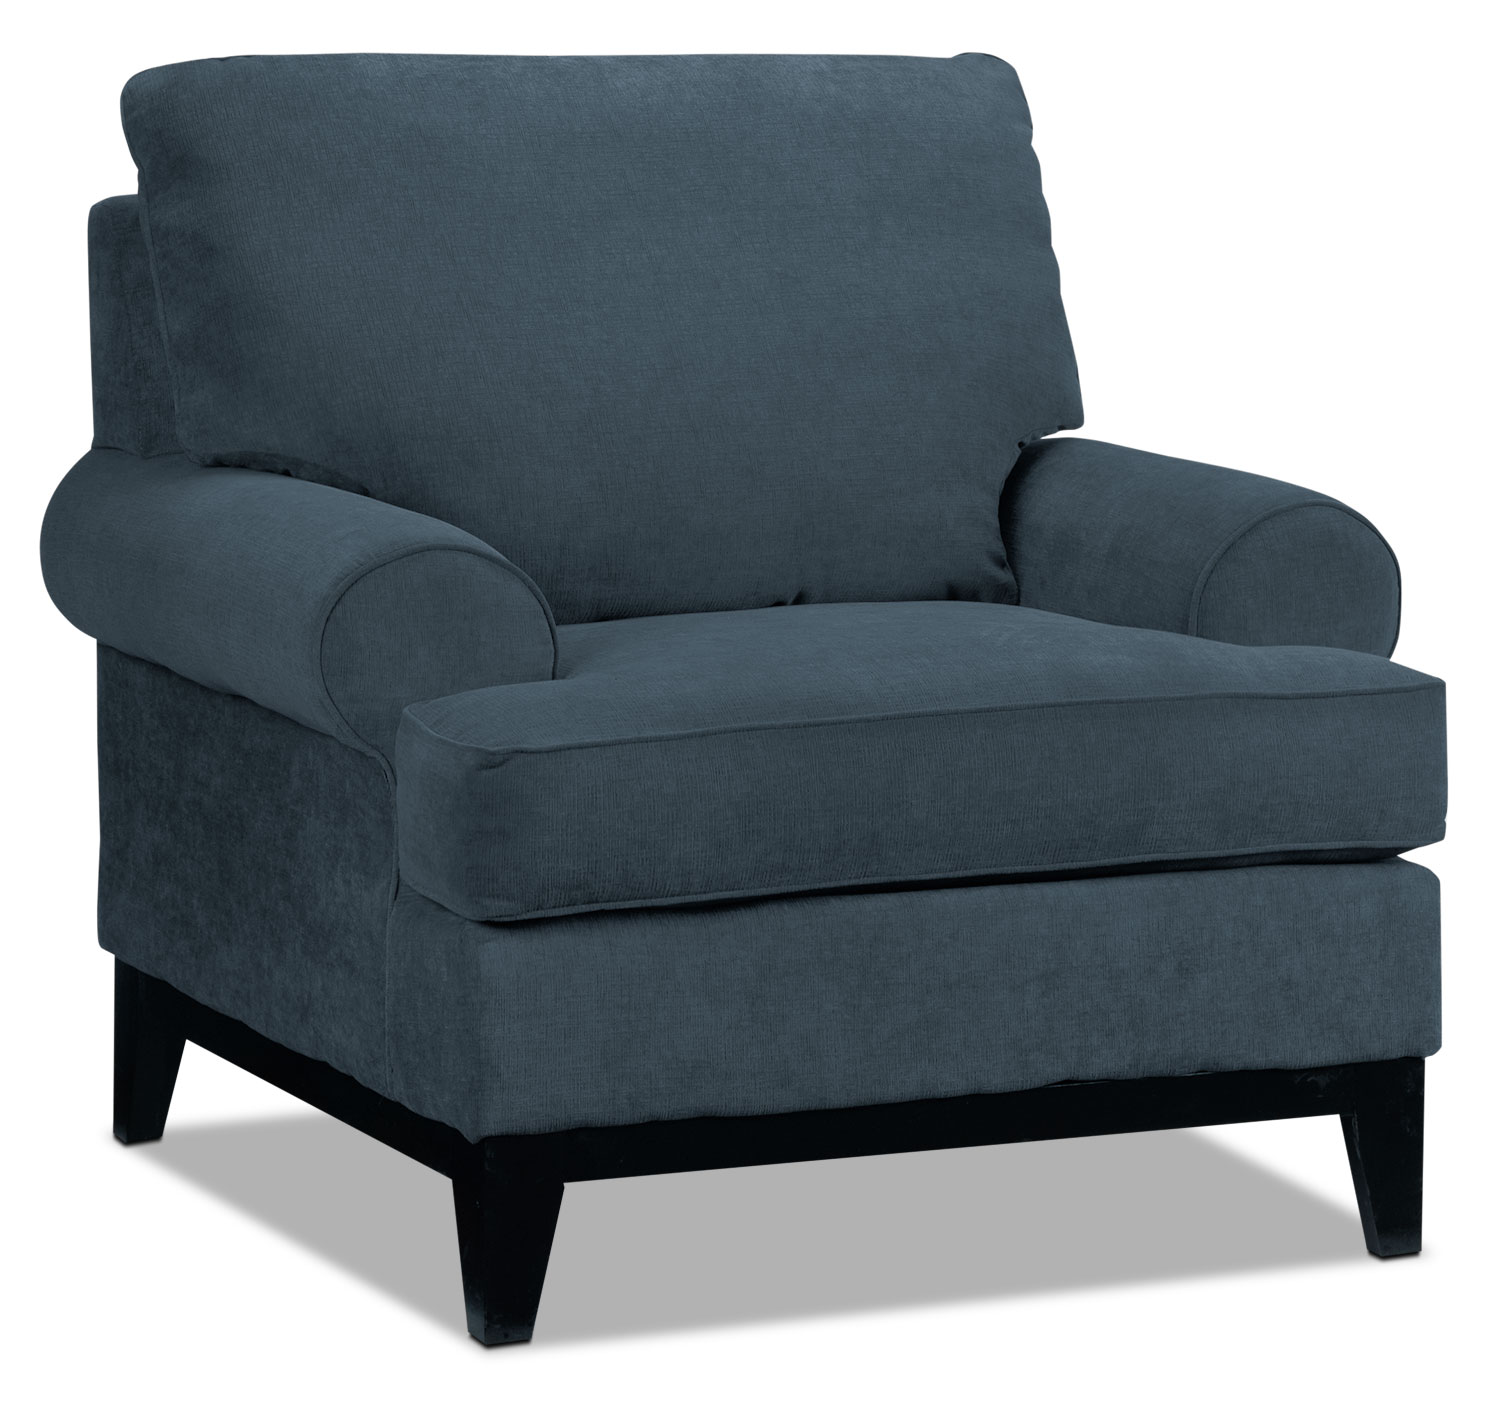 Living Room Furniture - Crizia Chair - Navy